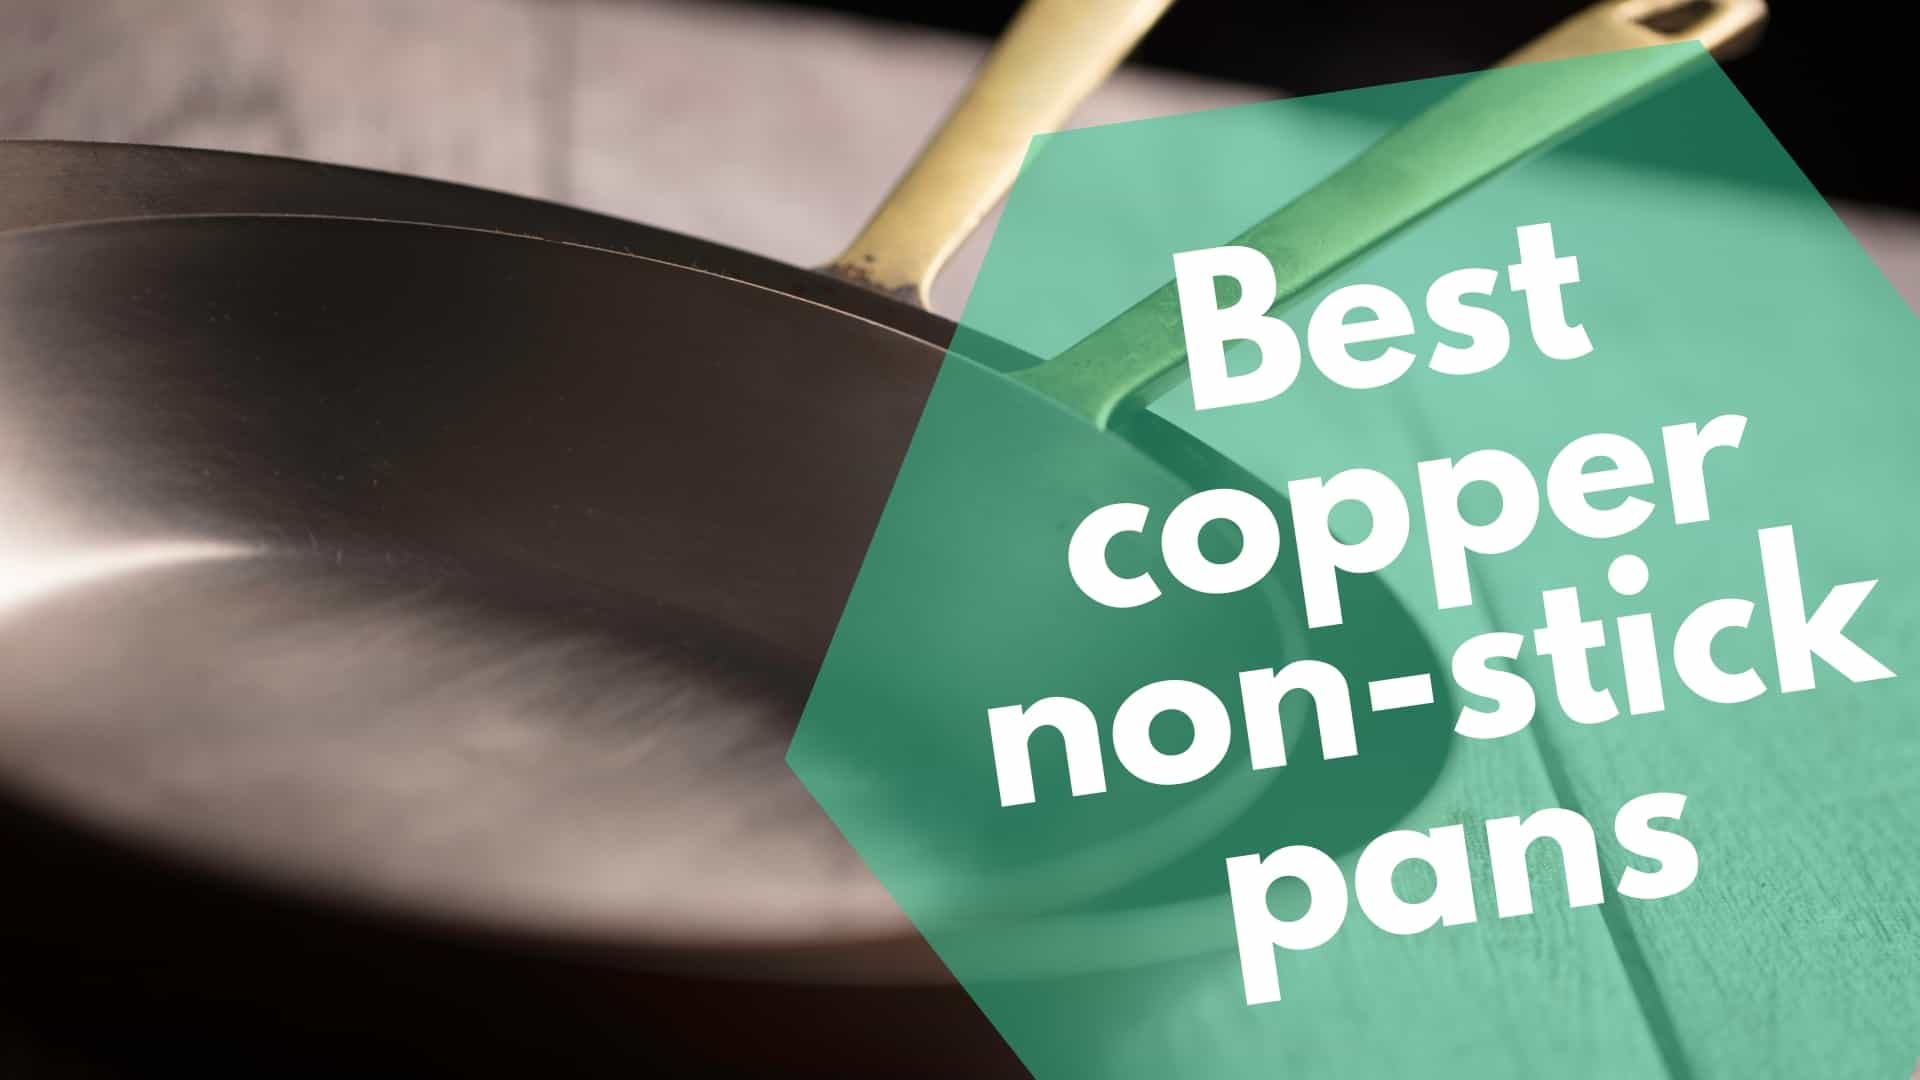 Best copper non-stick pans